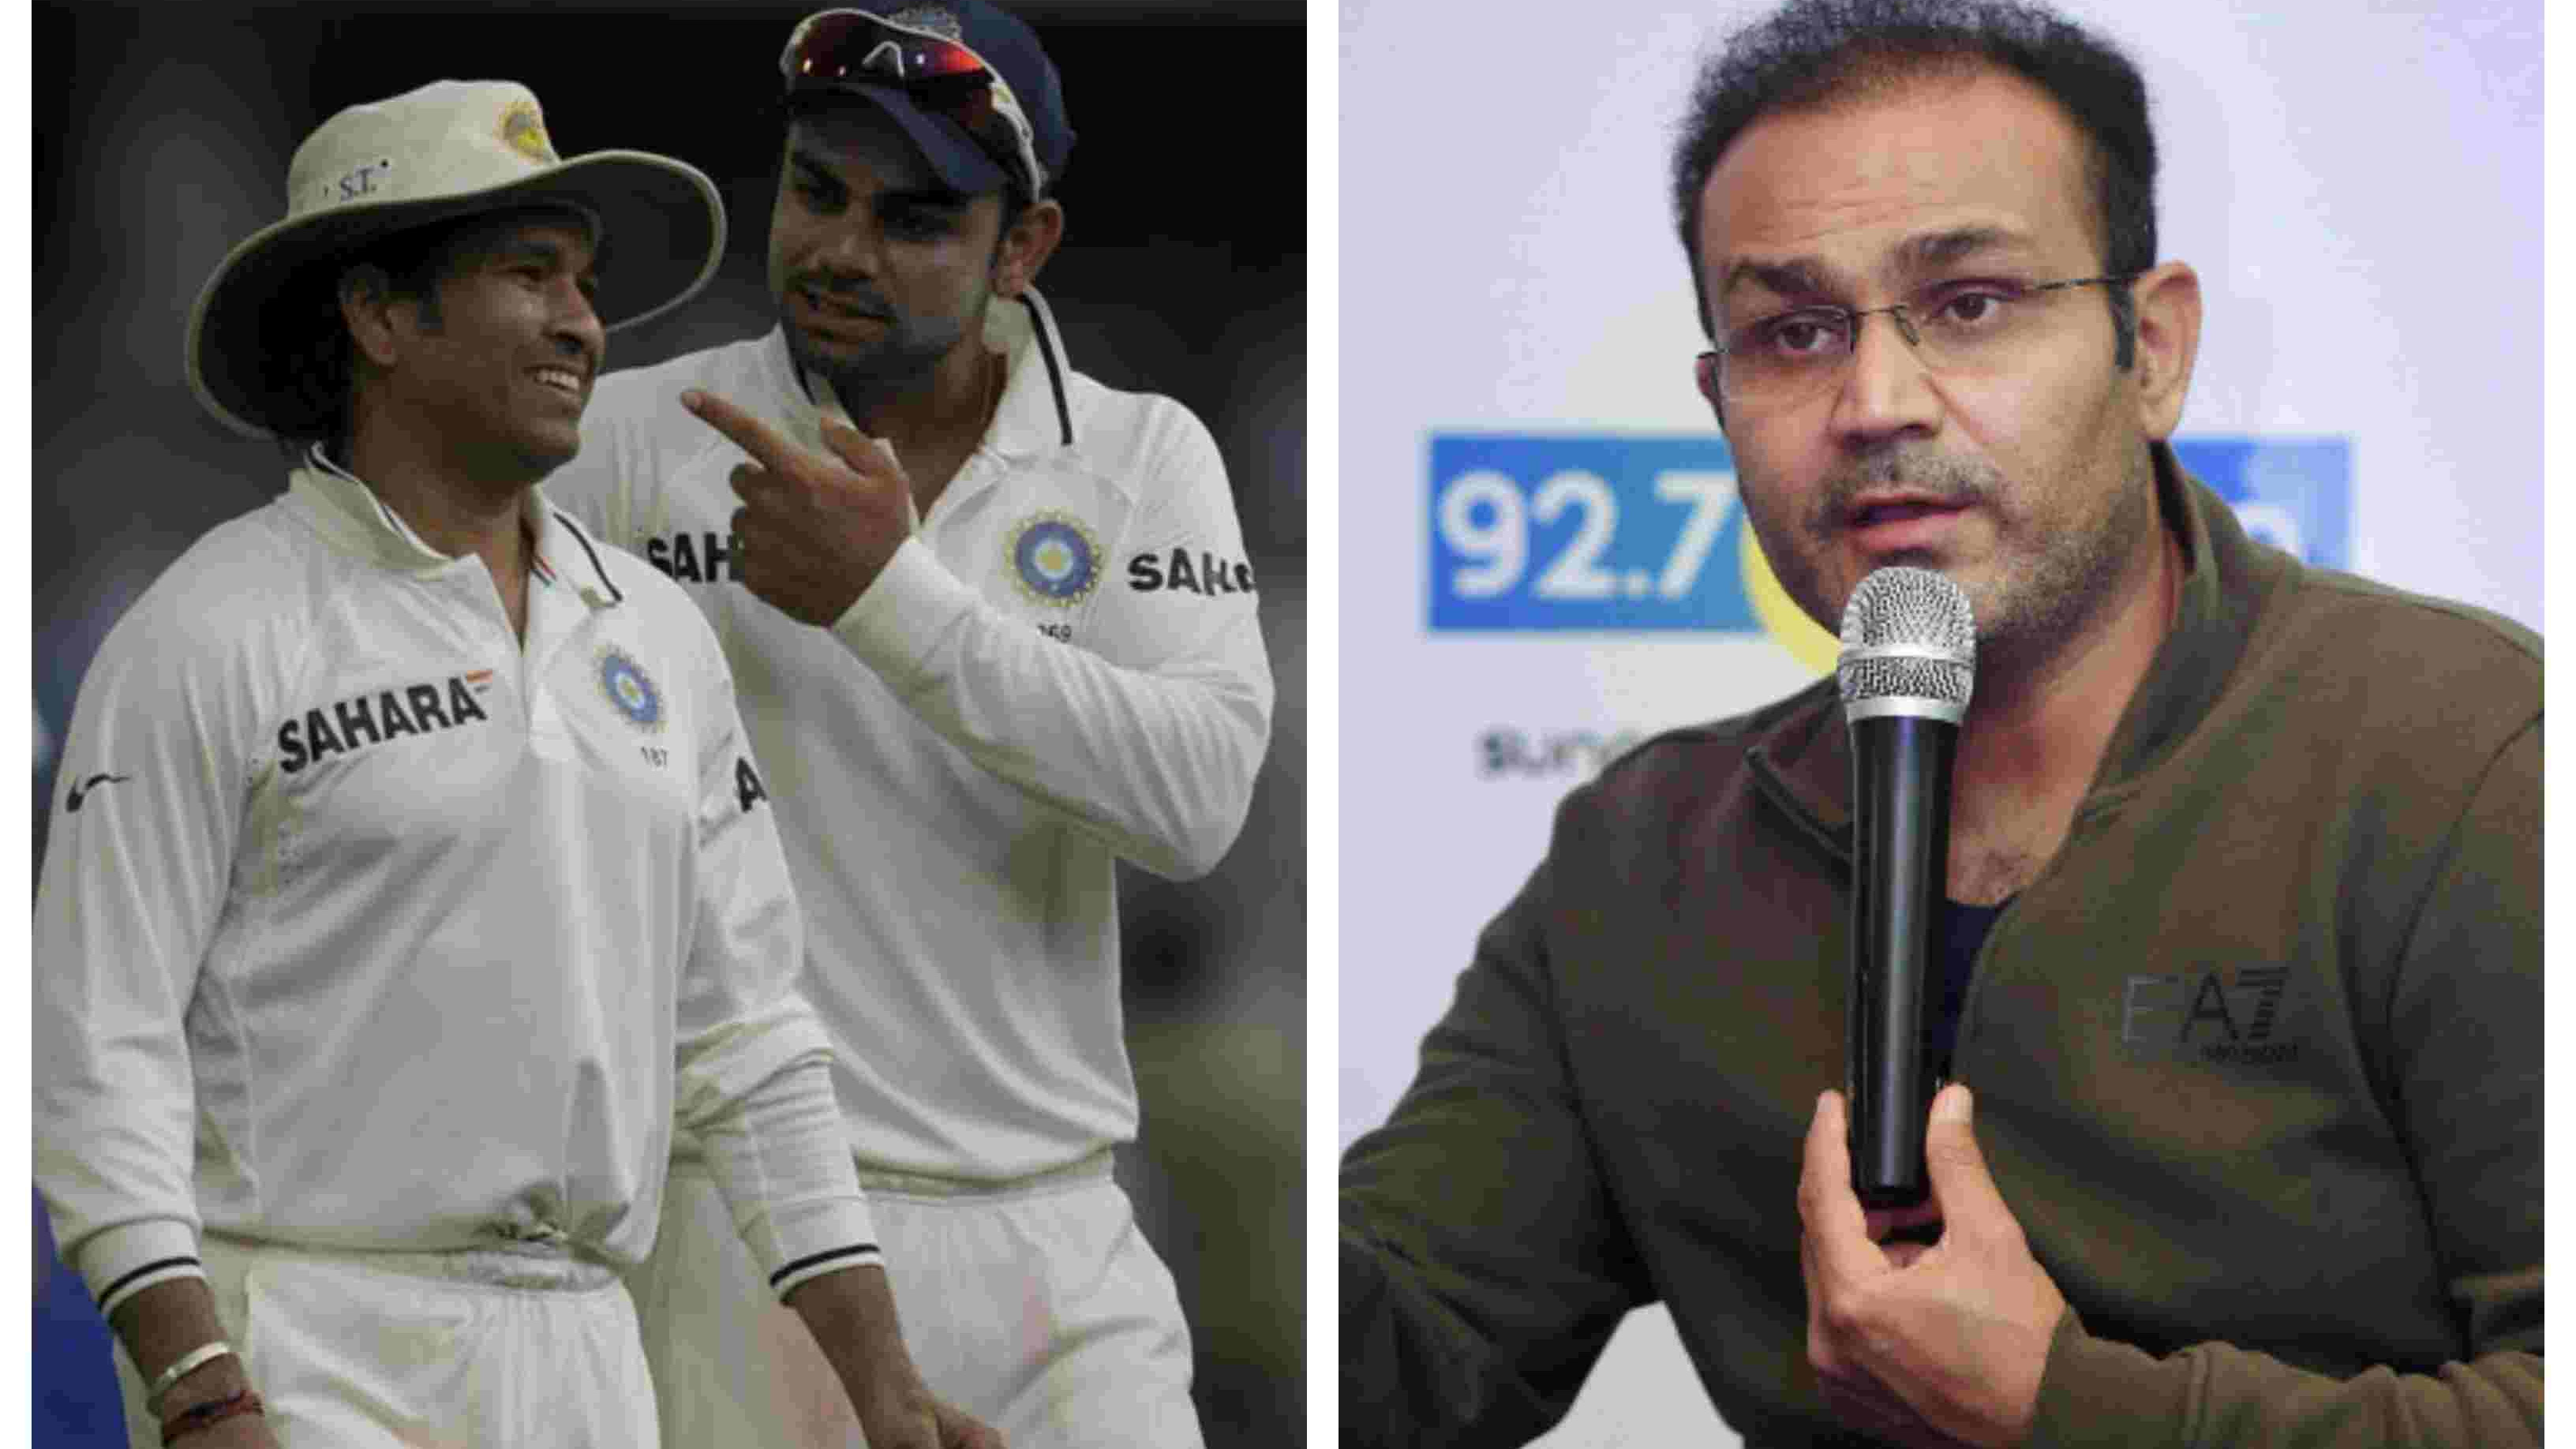 ENG v IND 2018: It's unfair to compare Virat Kohli with Sachin Tendulkar as yet, reckons Virender Sehwag